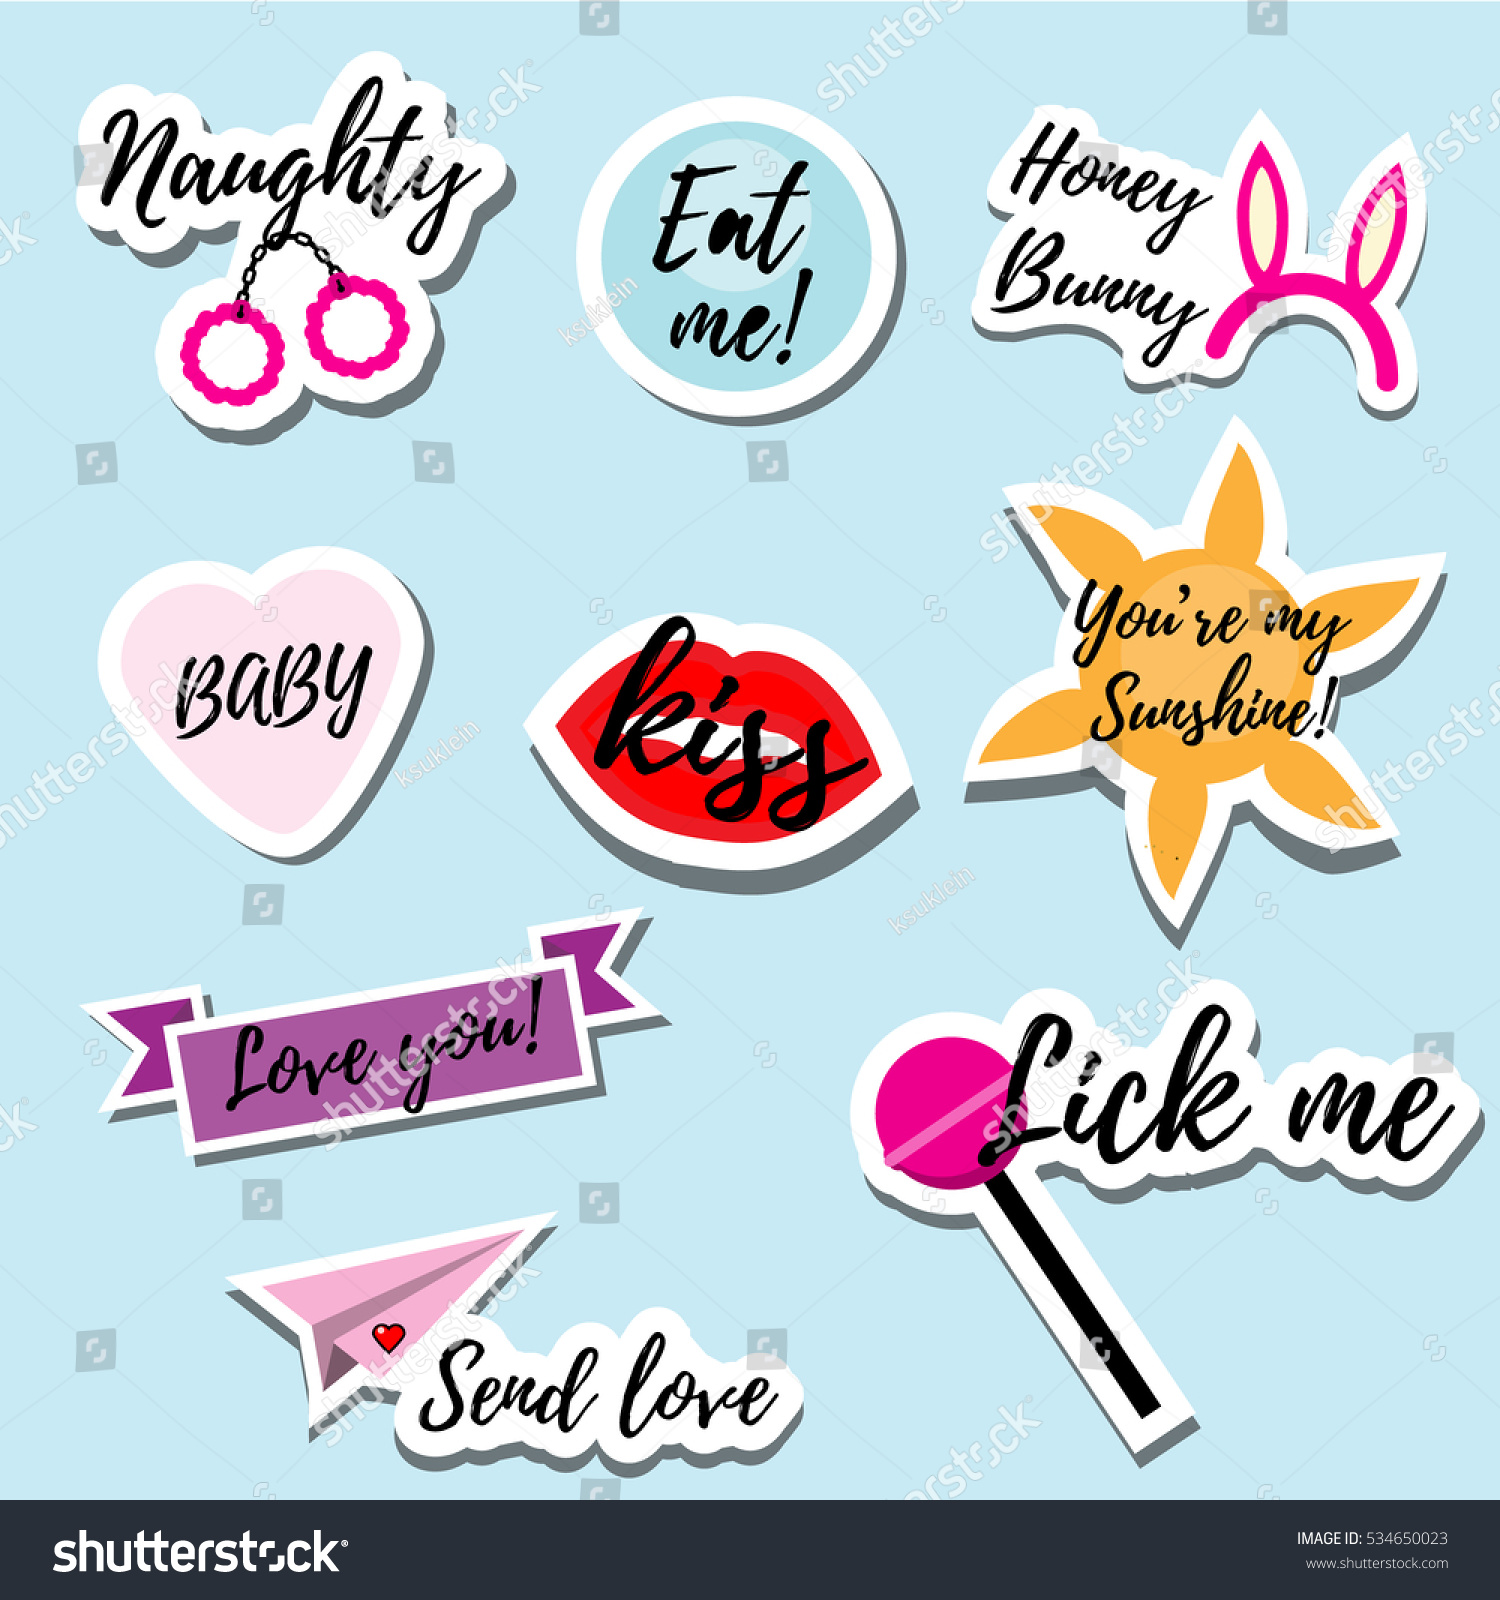 Trendy Fashionable Pins Patches Badges Stickers Stock Vector